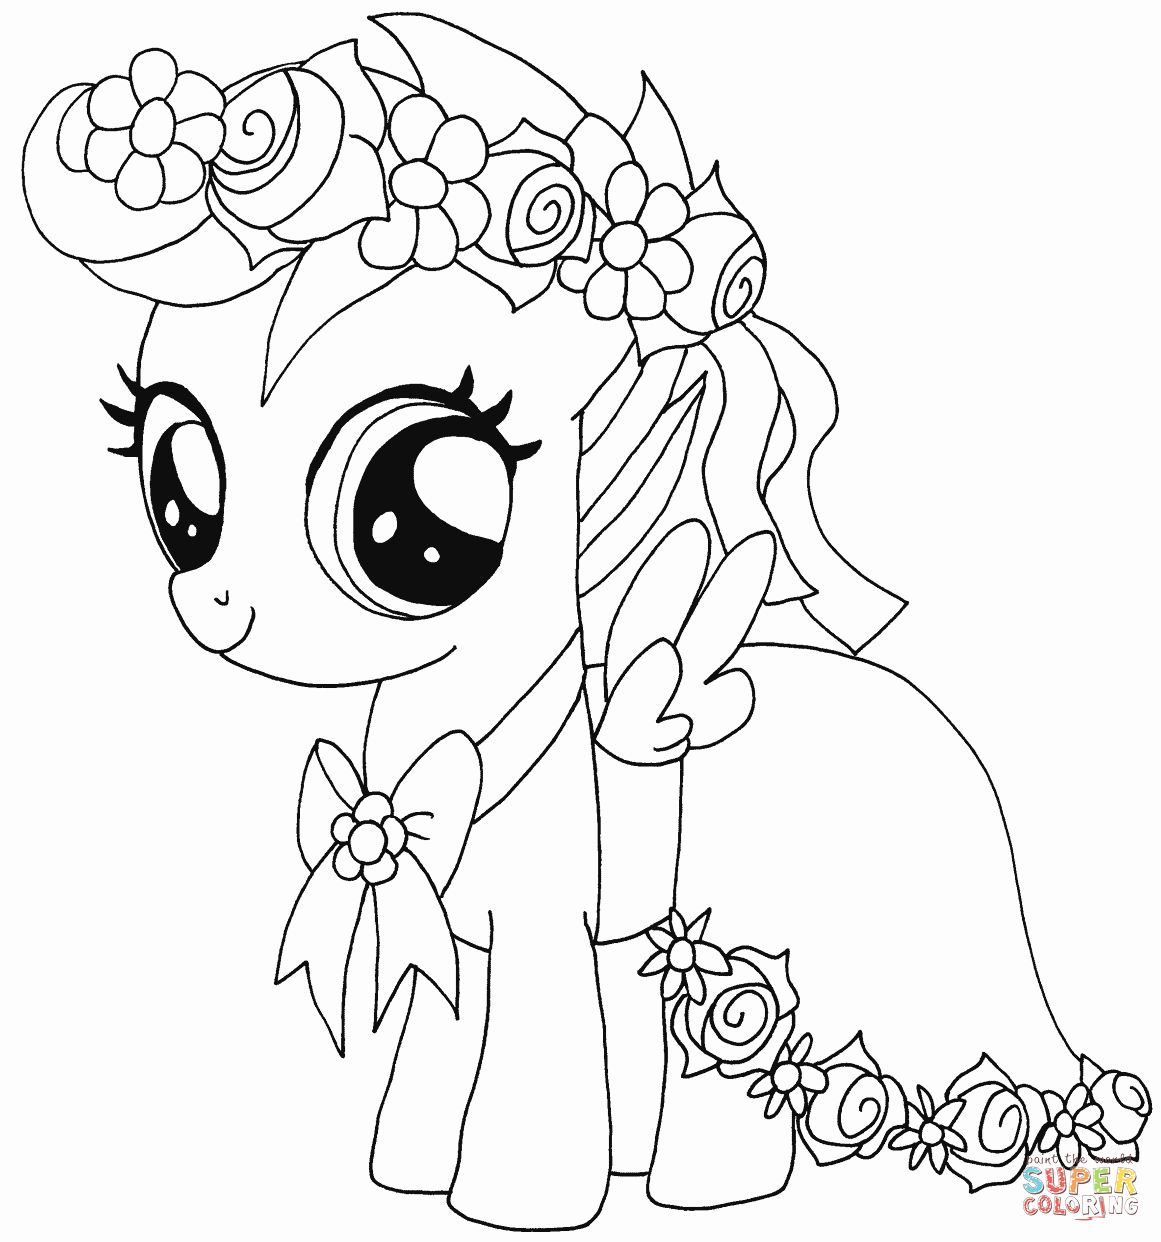 Coloring Pages My Little Pony My Little Pony Coloring Horse Coloring Pages Cartoon Coloring Pages